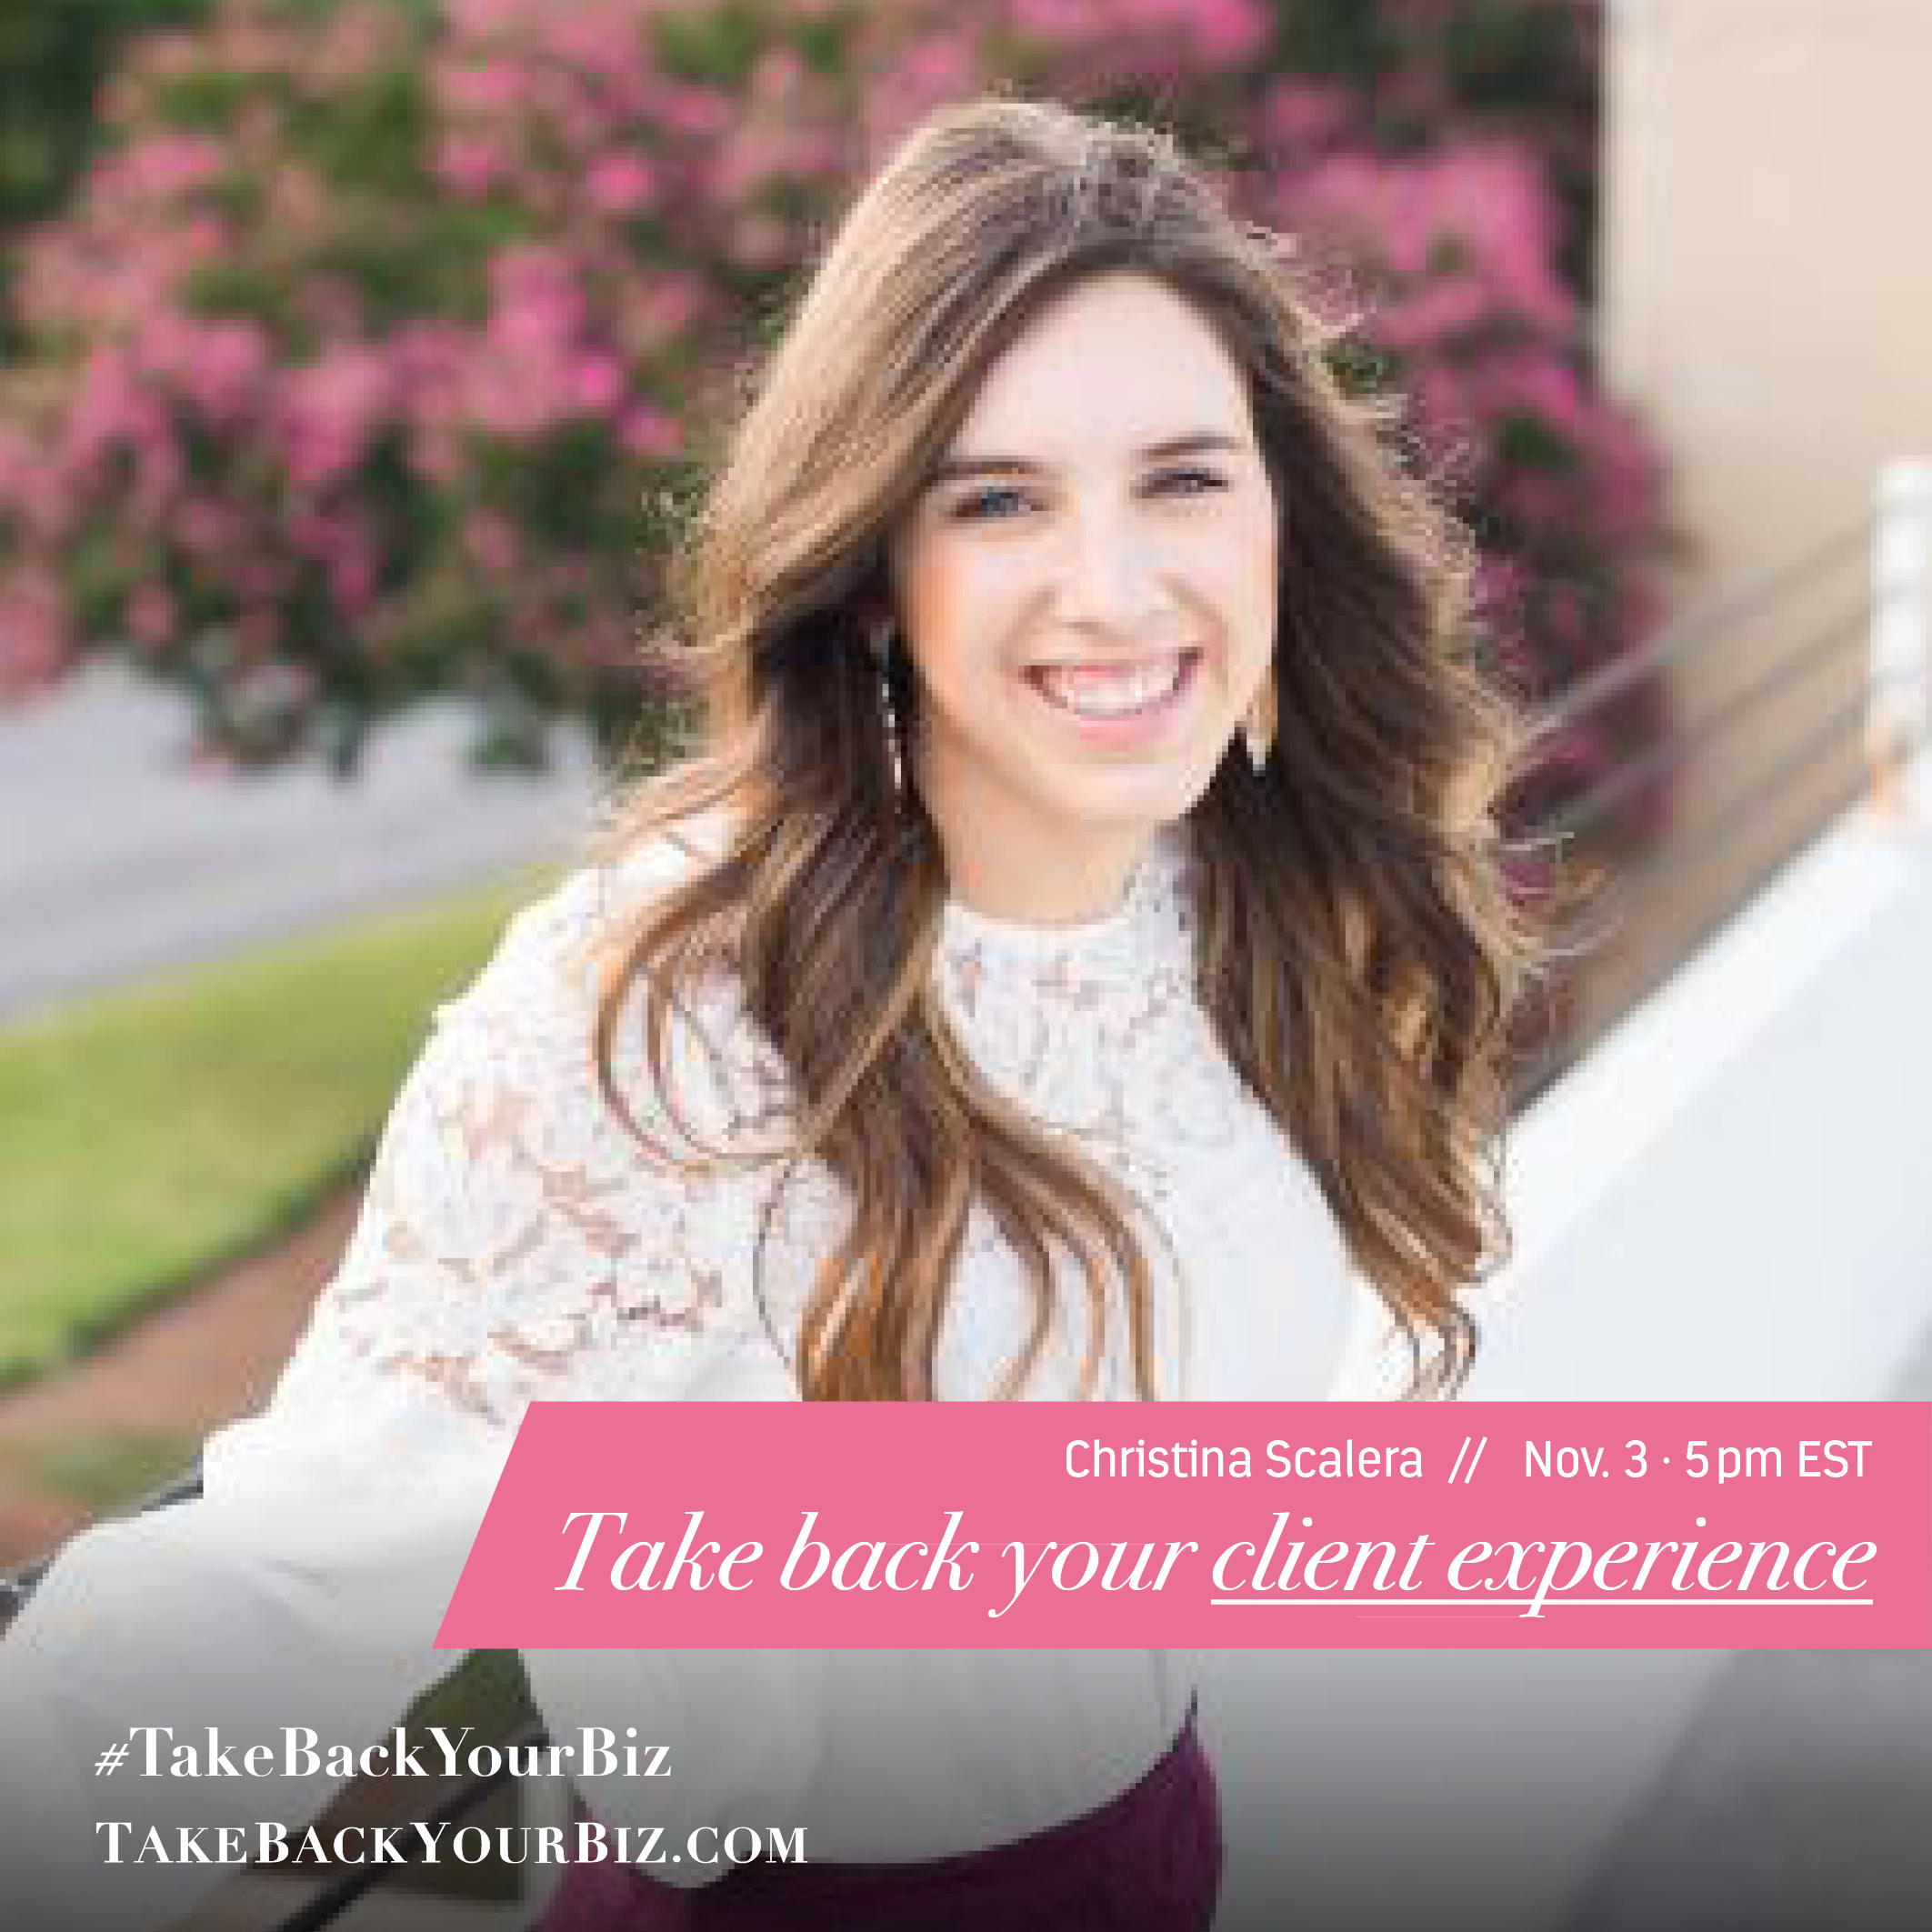 Take-Back-Your-Biz-Speakers-Christina-Scalera-Contract-Shop